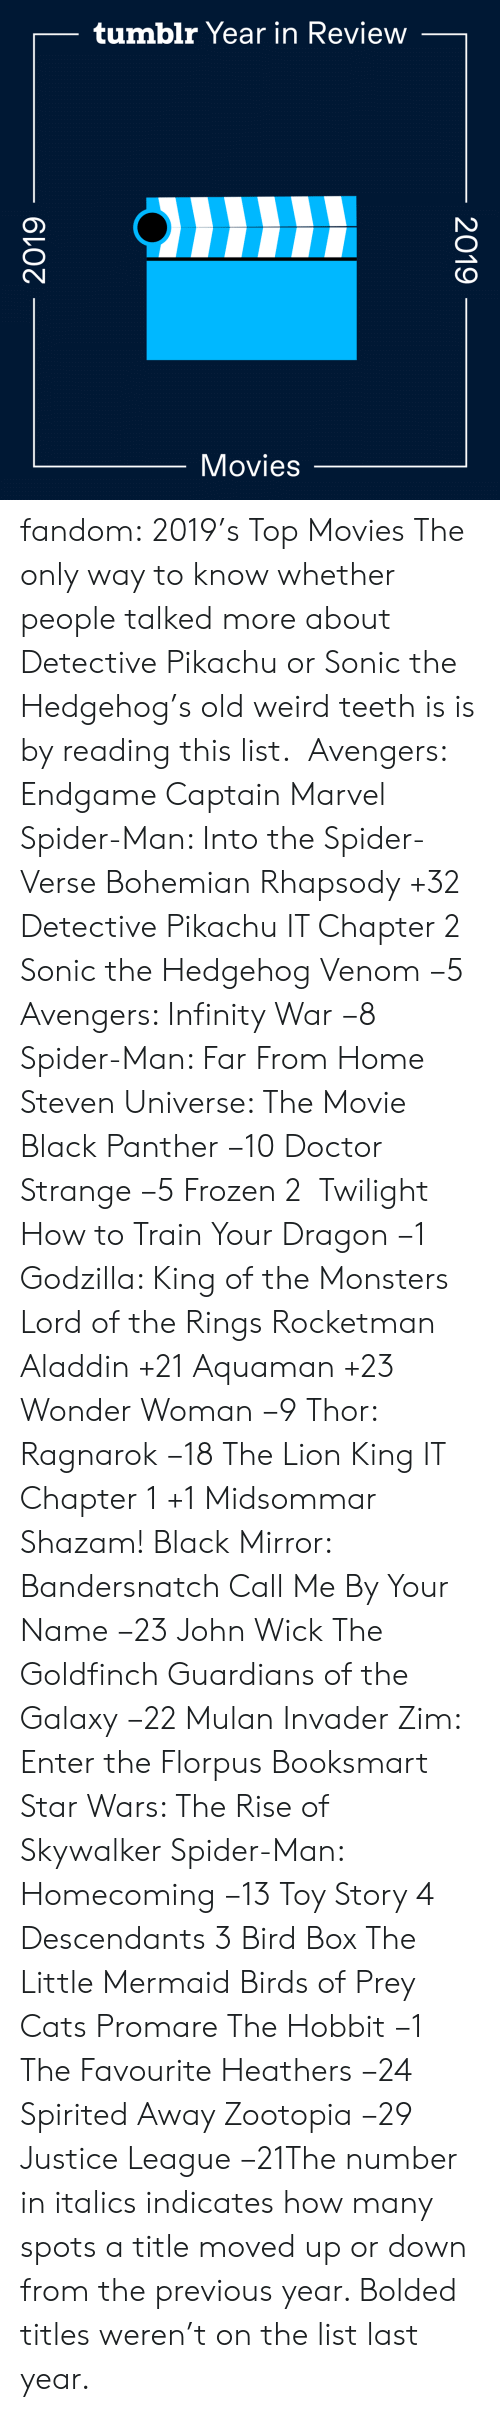 lotr: tumblr Year in Review  Movies  2019  2019 fandom:  2019's Top Movies  The only way to know whether people talked more about Detective Pikachu or Sonic the Hedgehog's old weird teeth is is by reading this list.   Avengers: Endgame  Captain Marvel  Spider-Man: Into the Spider-Verse  Bohemian Rhapsody +32  Detective Pikachu  IT Chapter 2  Sonic the Hedgehog  Venom −5  Avengers: Infinity War −8  Spider-Man: Far From Home  Steven Universe: The Movie  Black Panther −10  Doctor Strange −5  Frozen 2   Twilight  How to Train Your Dragon −1  Godzilla: King of the Monsters  Lord of the Rings  Rocketman  Aladdin +21  Aquaman +23  Wonder Woman −9  Thor: Ragnarok −18  The Lion King  IT Chapter 1 +1  Midsommar  Shazam!  Black Mirror: Bandersnatch  Call Me By Your Name −23  John Wick  The Goldfinch  Guardians of the Galaxy −22  Mulan  Invader Zim: Enter the Florpus  Booksmart  Star Wars: The Rise of Skywalker  Spider-Man: Homecoming −13  Toy Story 4  Descendants 3  Bird Box  The Little Mermaid  Birds of Prey  Cats  Promare  The Hobbit −1  The Favourite  Heathers −24  Spirited Away  Zootopia −29 Justice League −21The number in italics indicates how many spots a title moved up or down from the previous year. Bolded titles weren't on the list last year.